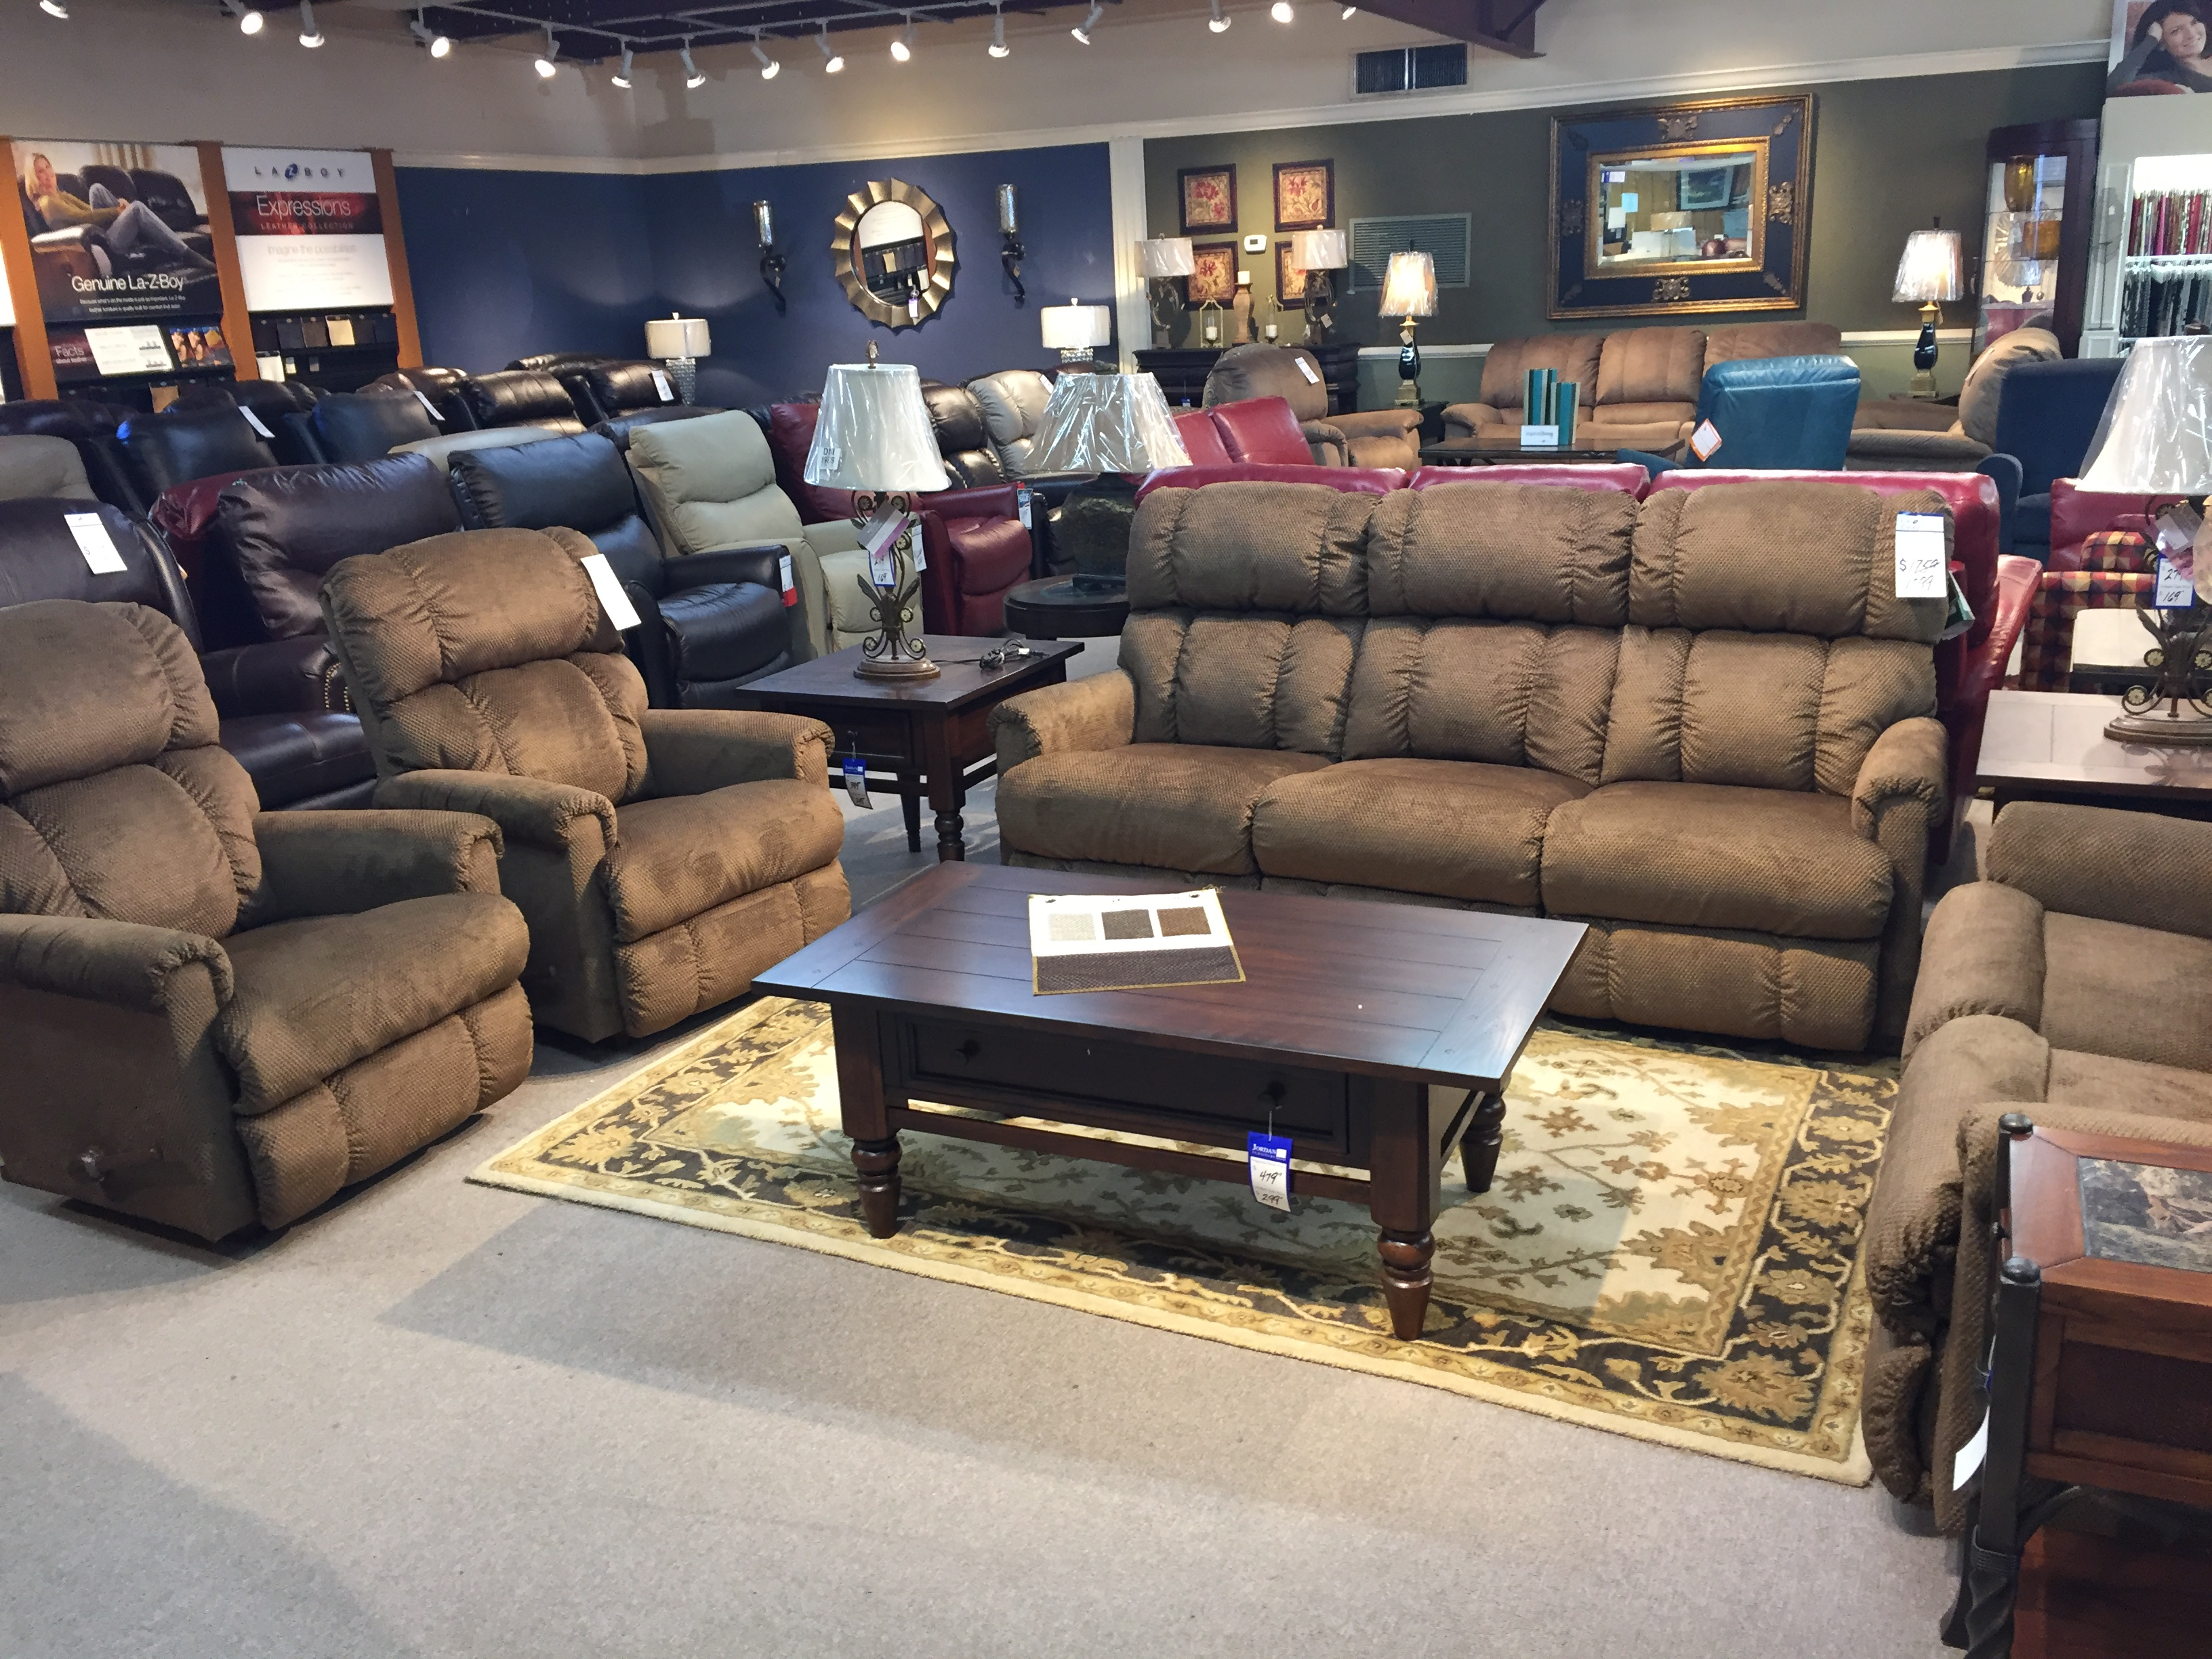 Recliner Jordan Furniture Learn More About Us Jordan Furniture Furniture Stores Florence Sc